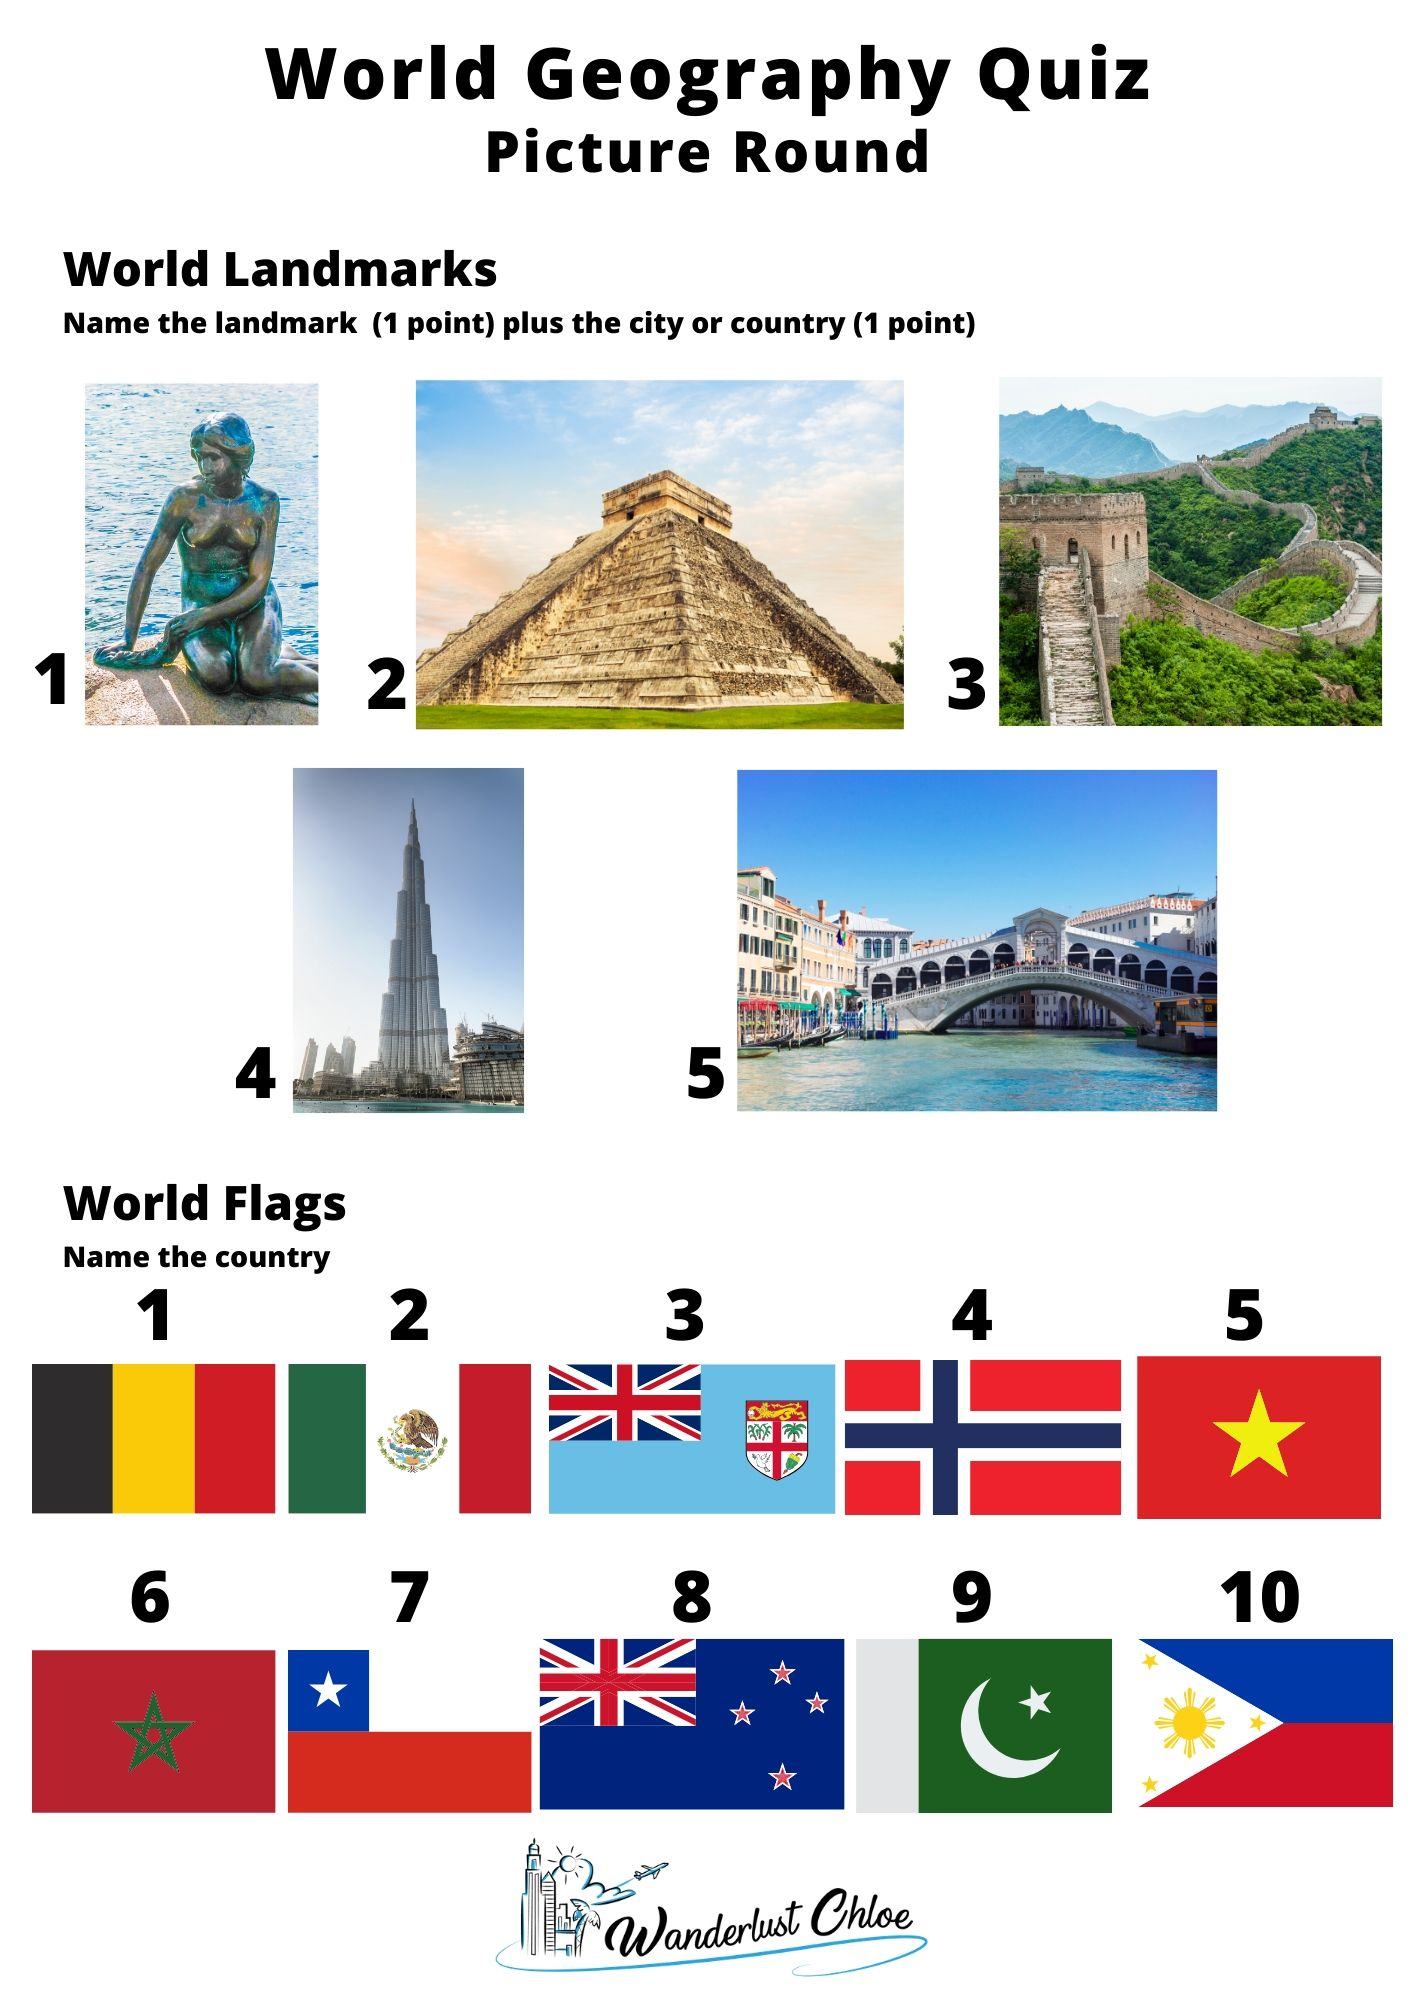 World geography quiz printable - picture round